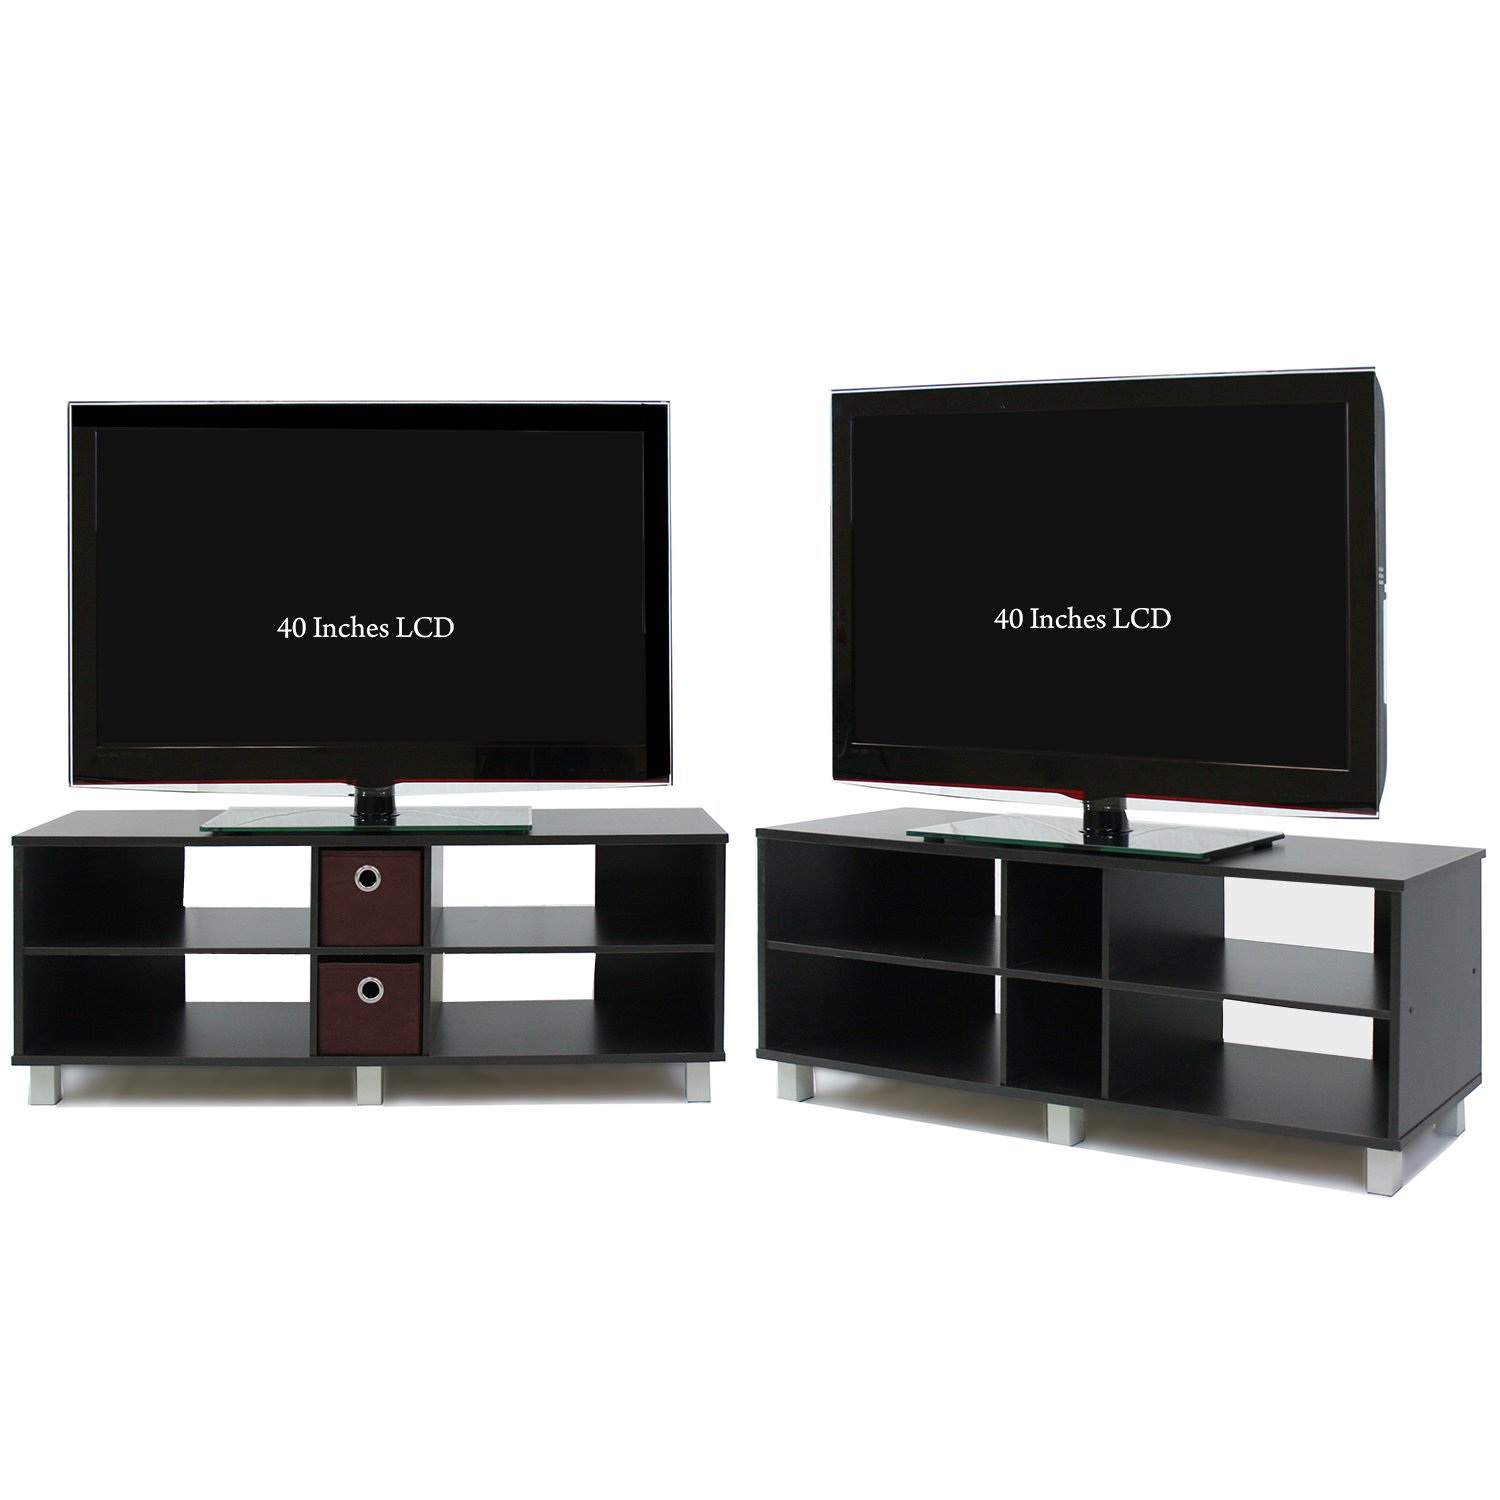 Tv Entertainment Stand Amazoncom Furinno 44 165 Inch Wood Tv Entertainment Center With